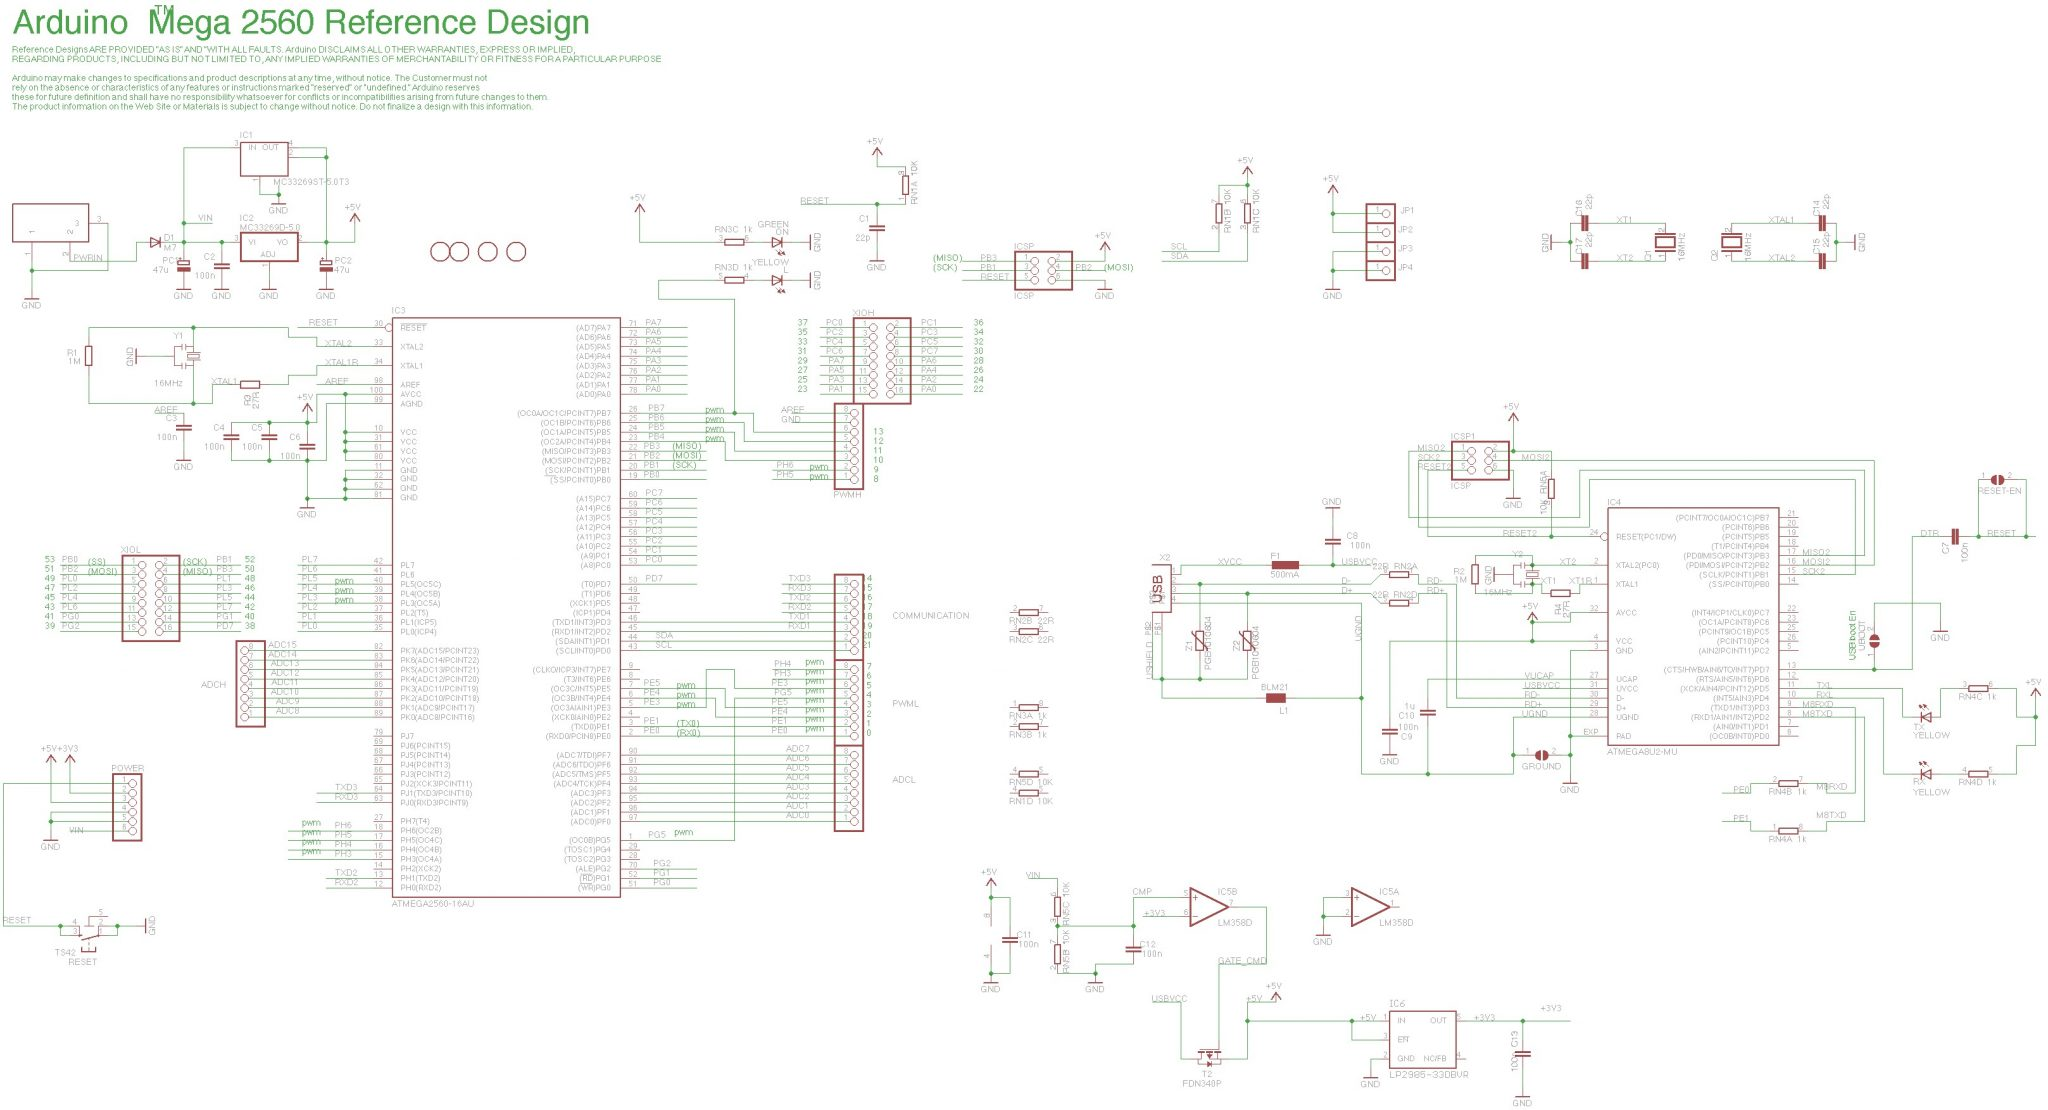 Arduino Mega 2560 Circuit Diagram